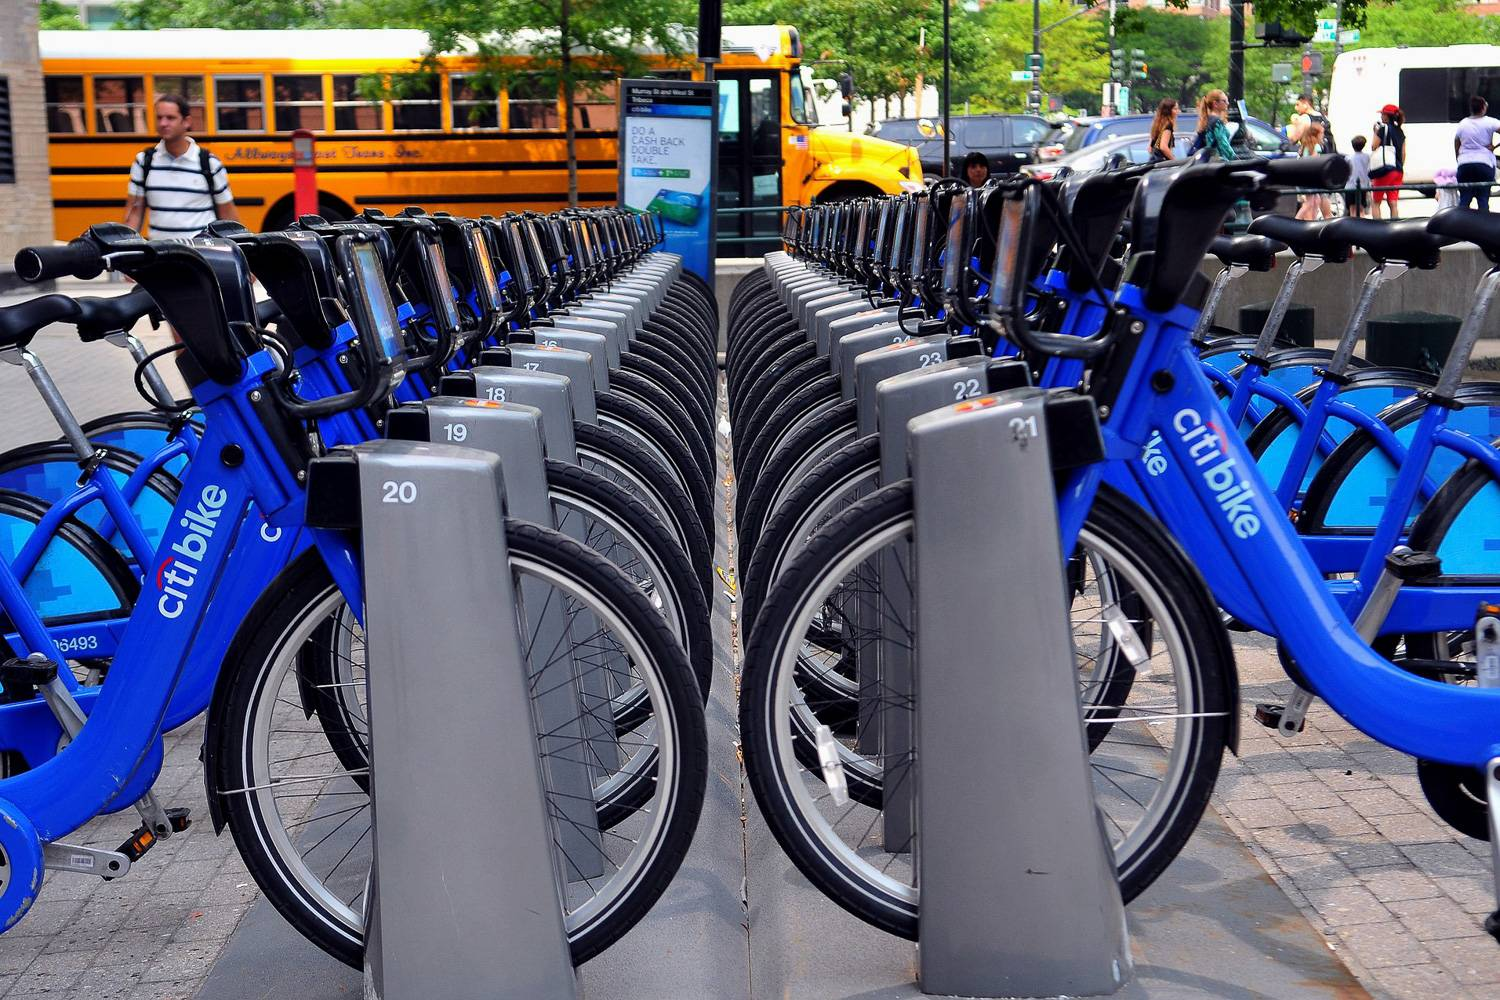 Immagine di Citi Bikes in una stazione di bike sharing a New York.